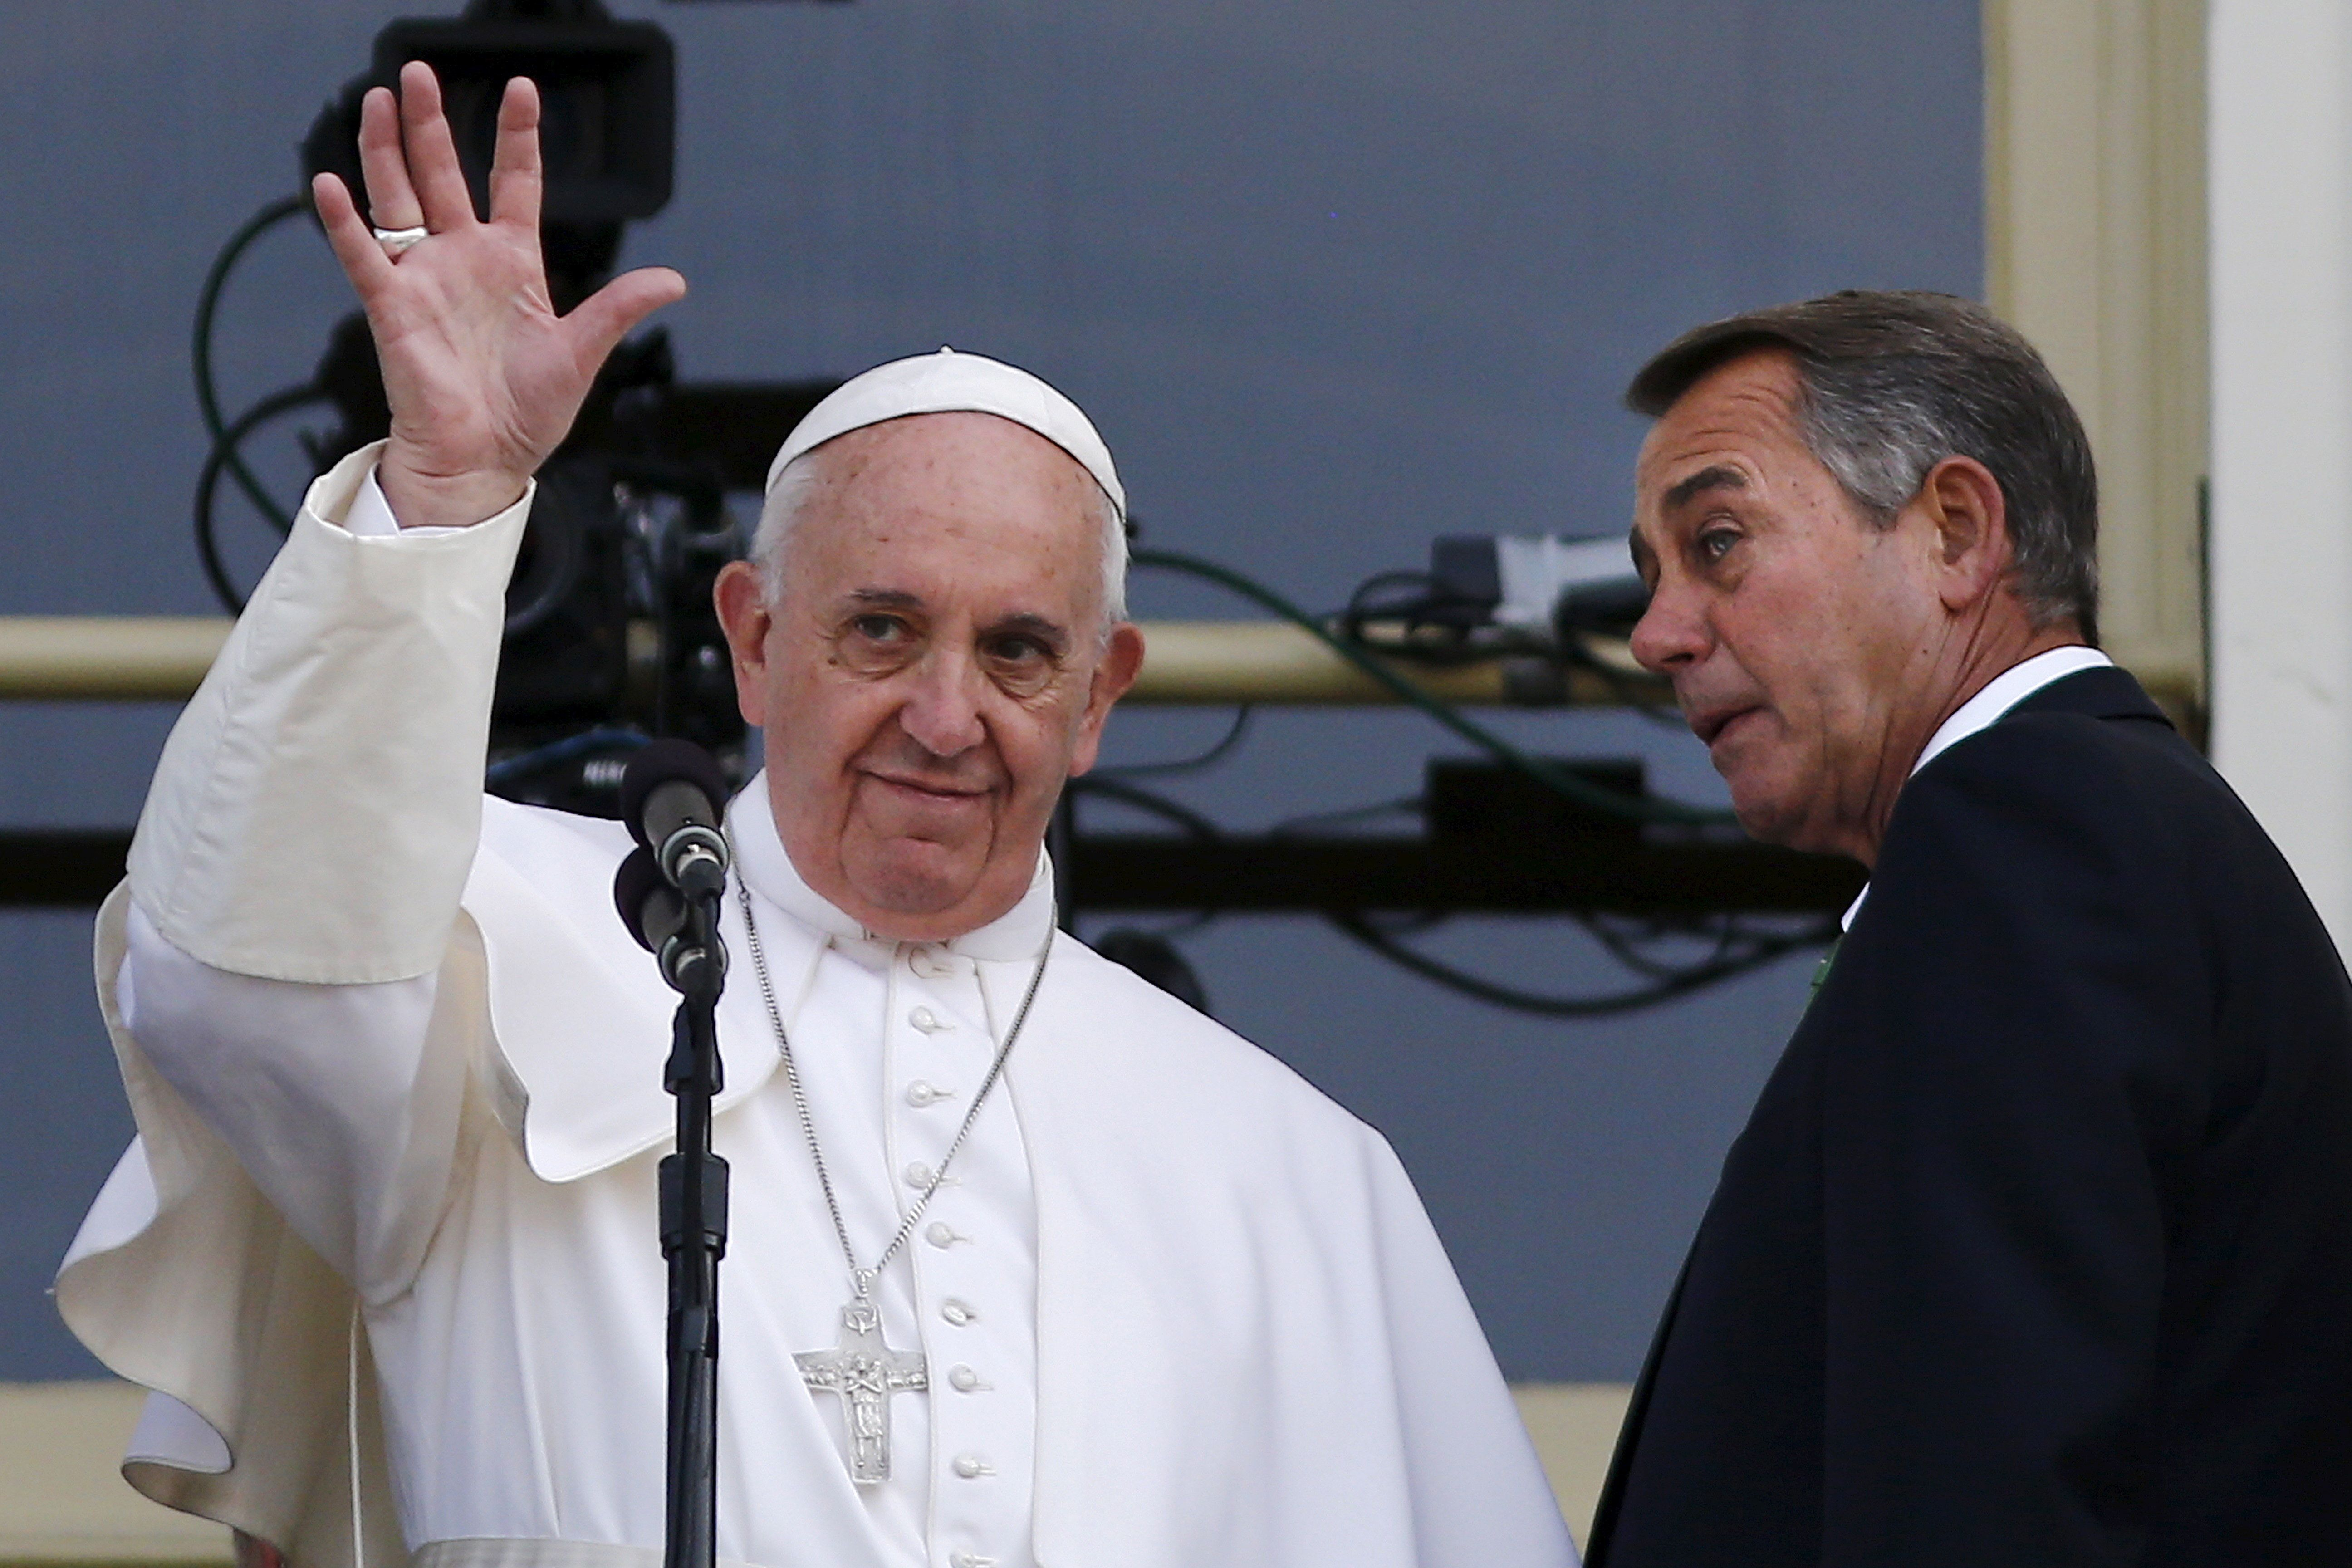 Pope Francis was addressing Congress but speaking to the world.